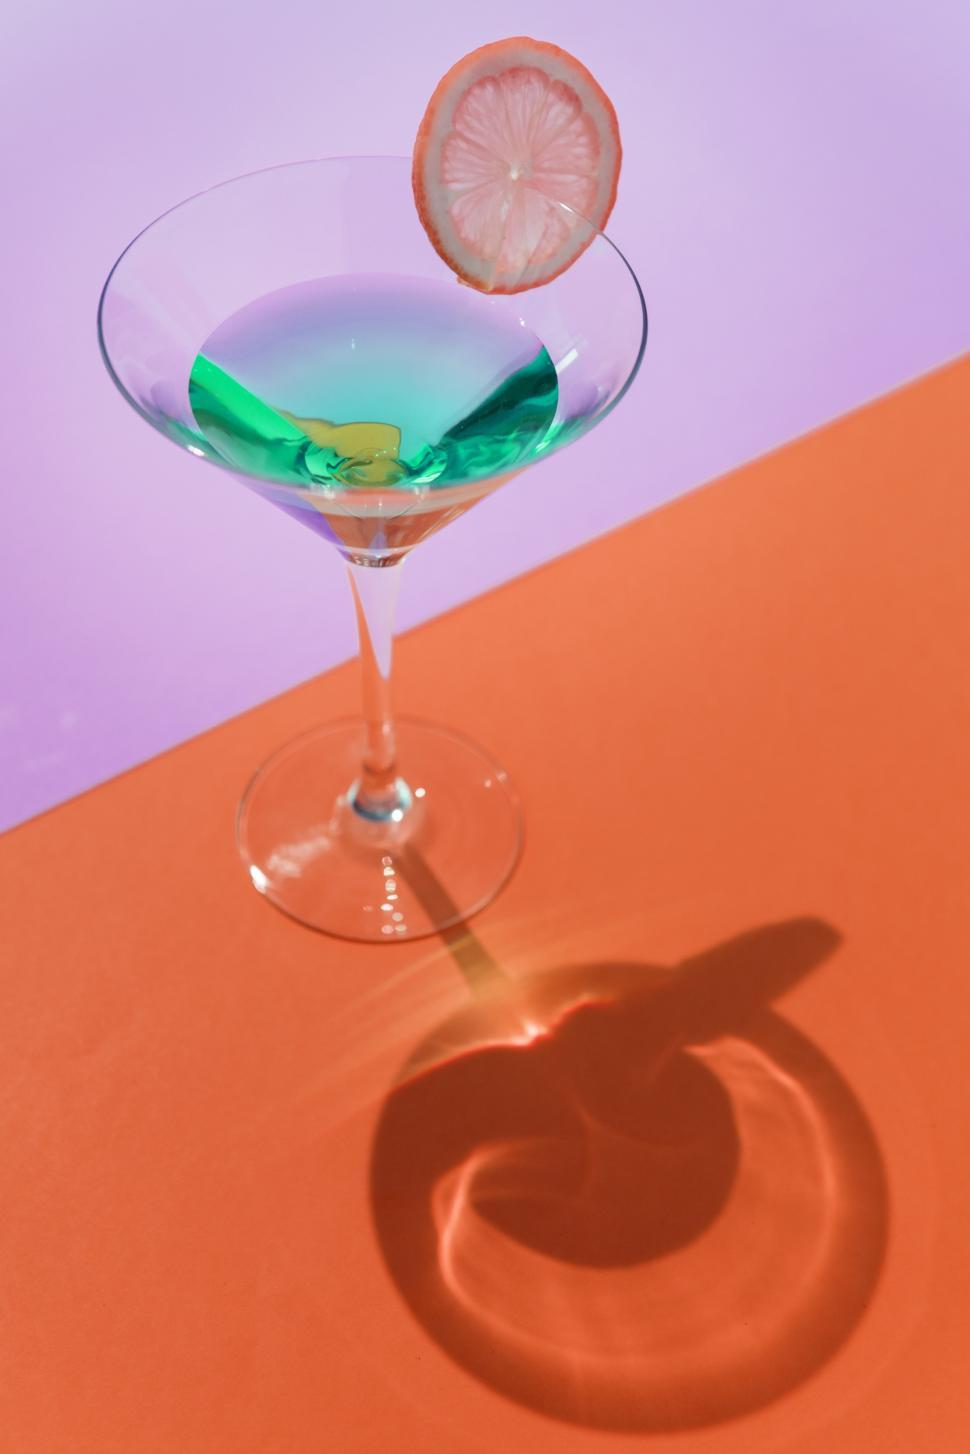 Download Free Stock Photo of Close up of a glass of martini on colorful background